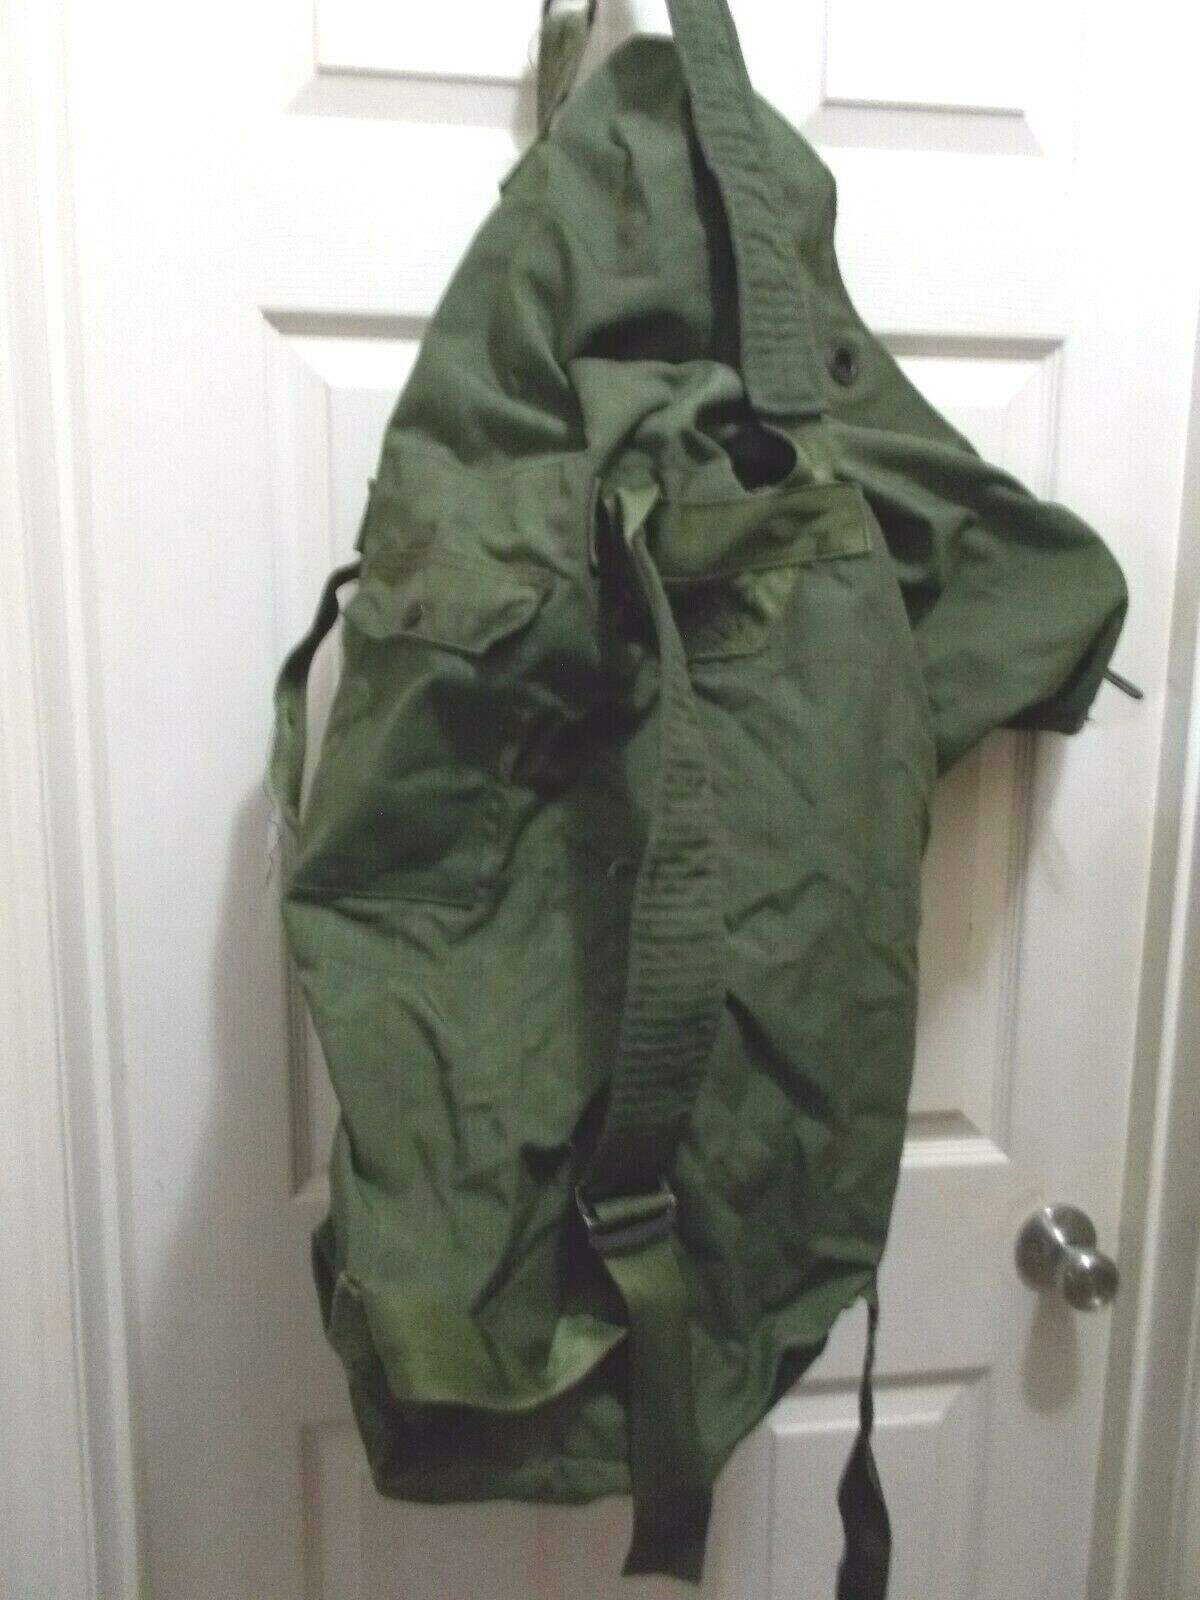 US NAVY Military Nylon Duffel Backpack Survival Sea Bag SP0100-99-0-0304 Etc.  - $29.50